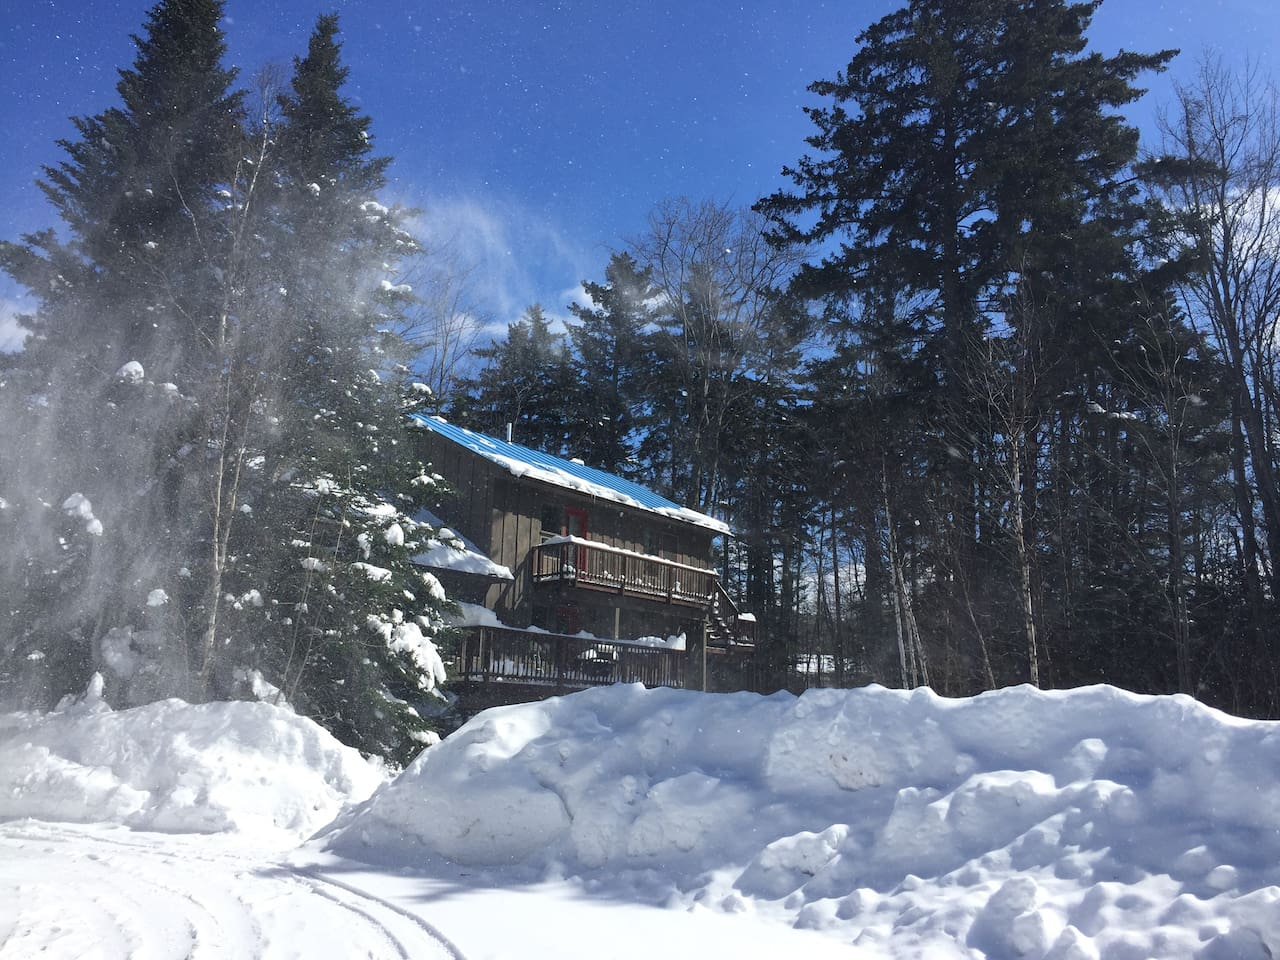 Private secluded setting in hart of Killington, right on access road 3 min to ski slopes. Big private parking lot, hot tub.